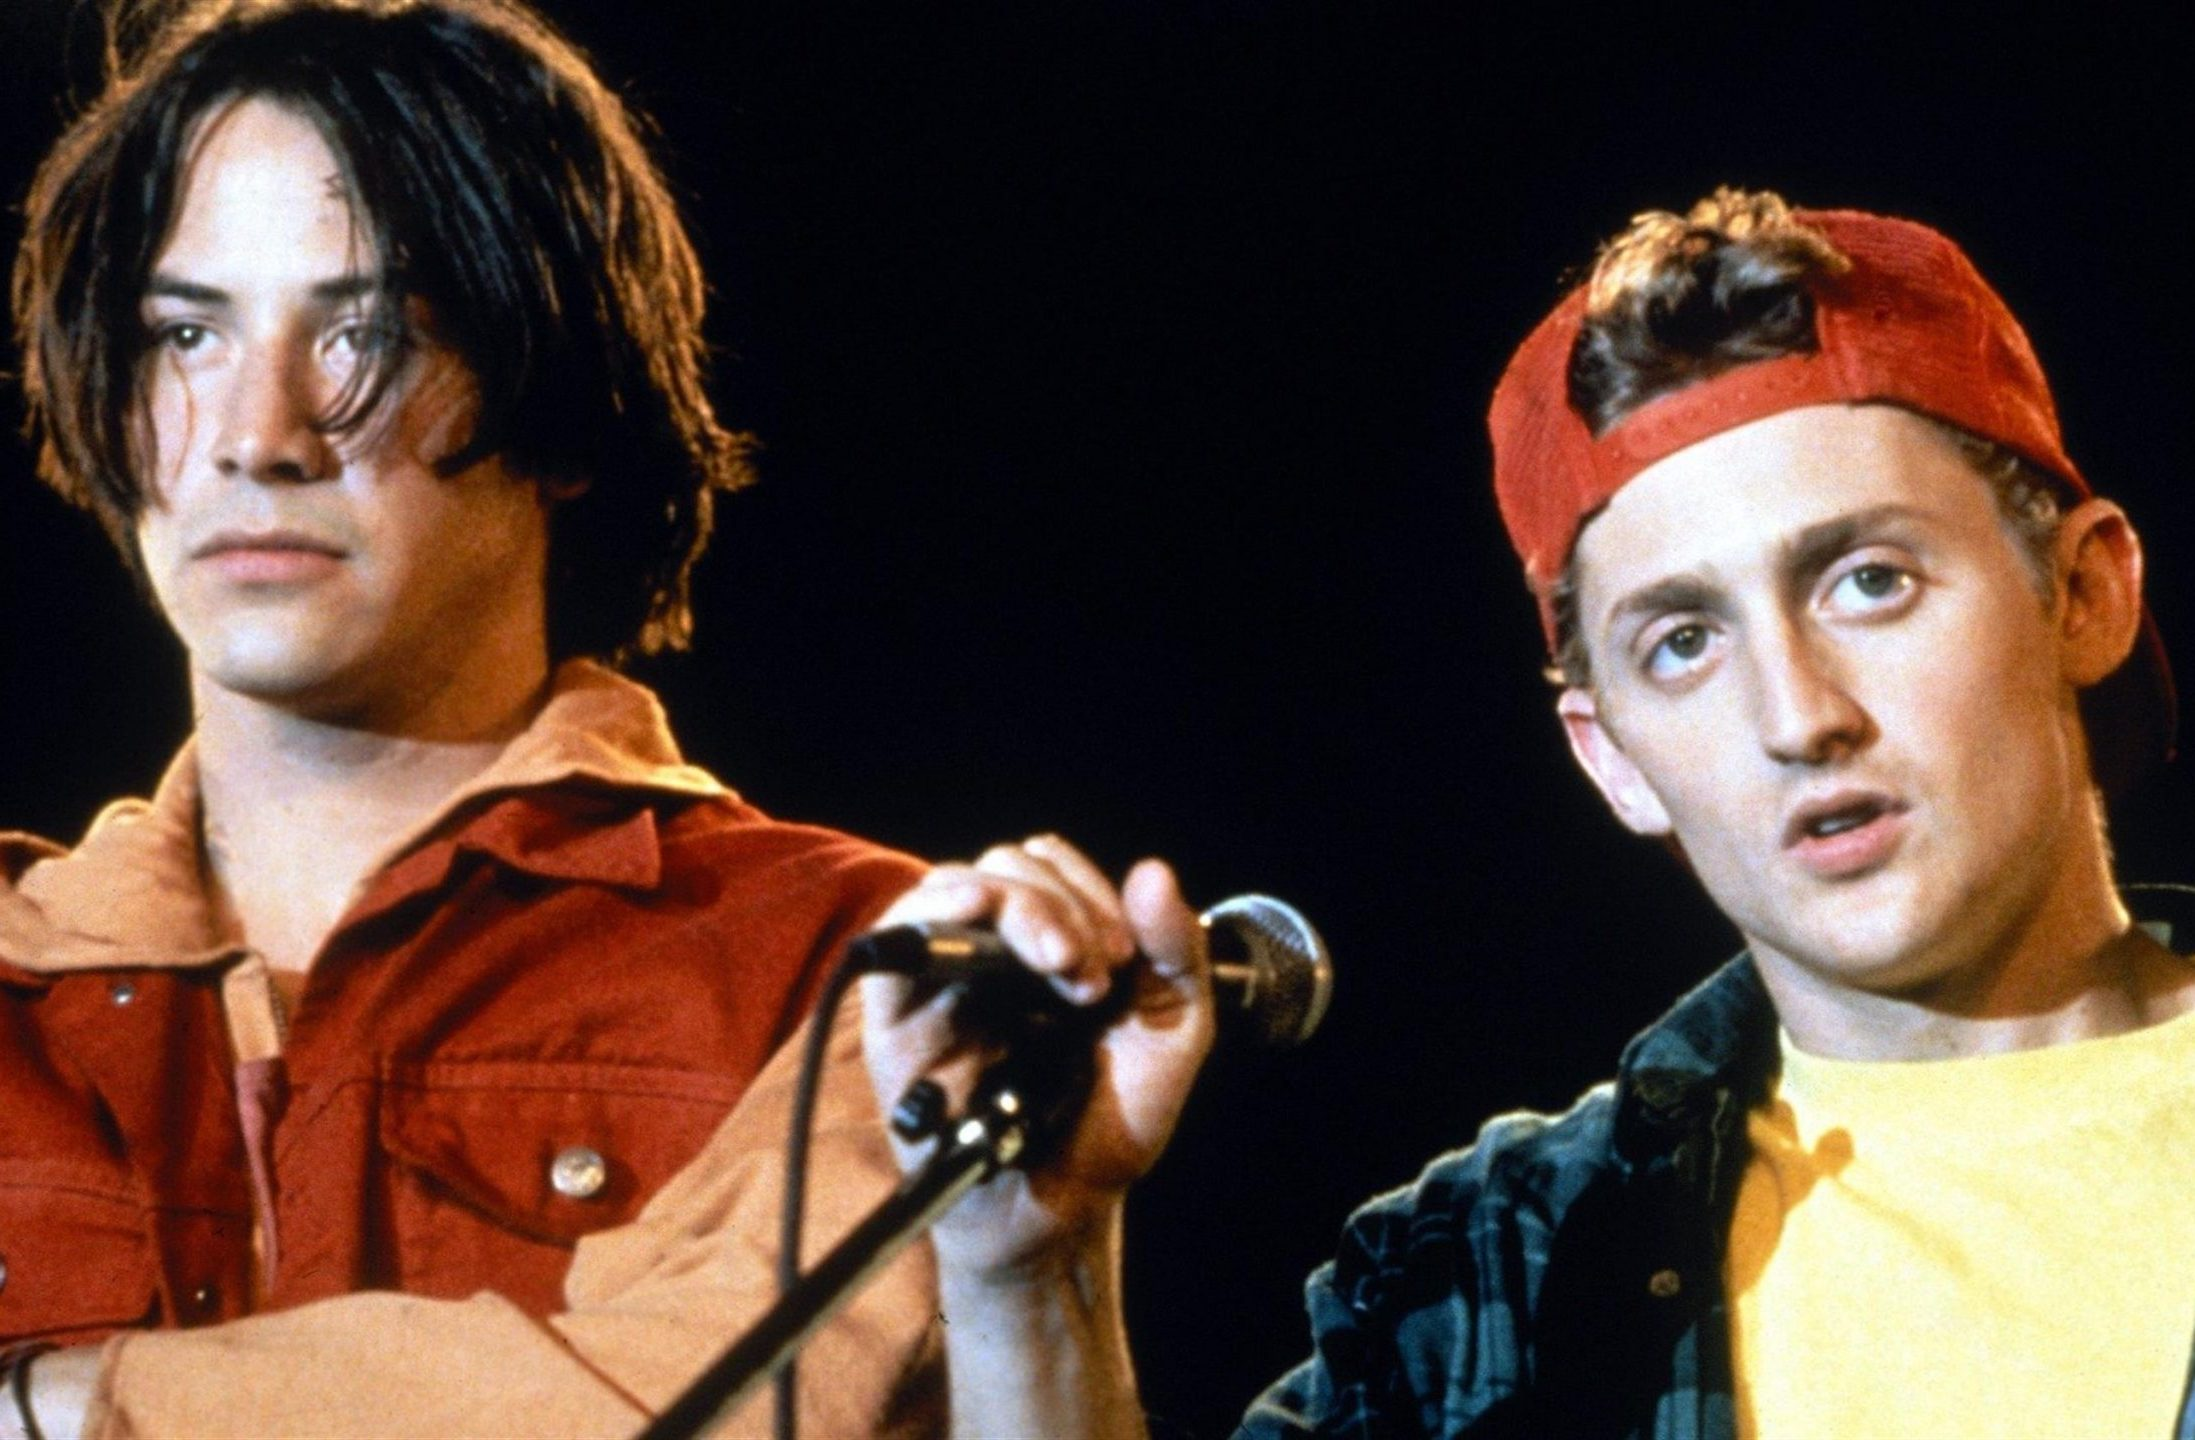 200826 4221294 Bill Ted s Bogus Journey 3000x1688 1783184451624 scaled e1605800267462 30 Most Triumphant Truths About Bill & Ted's Bogus Journey